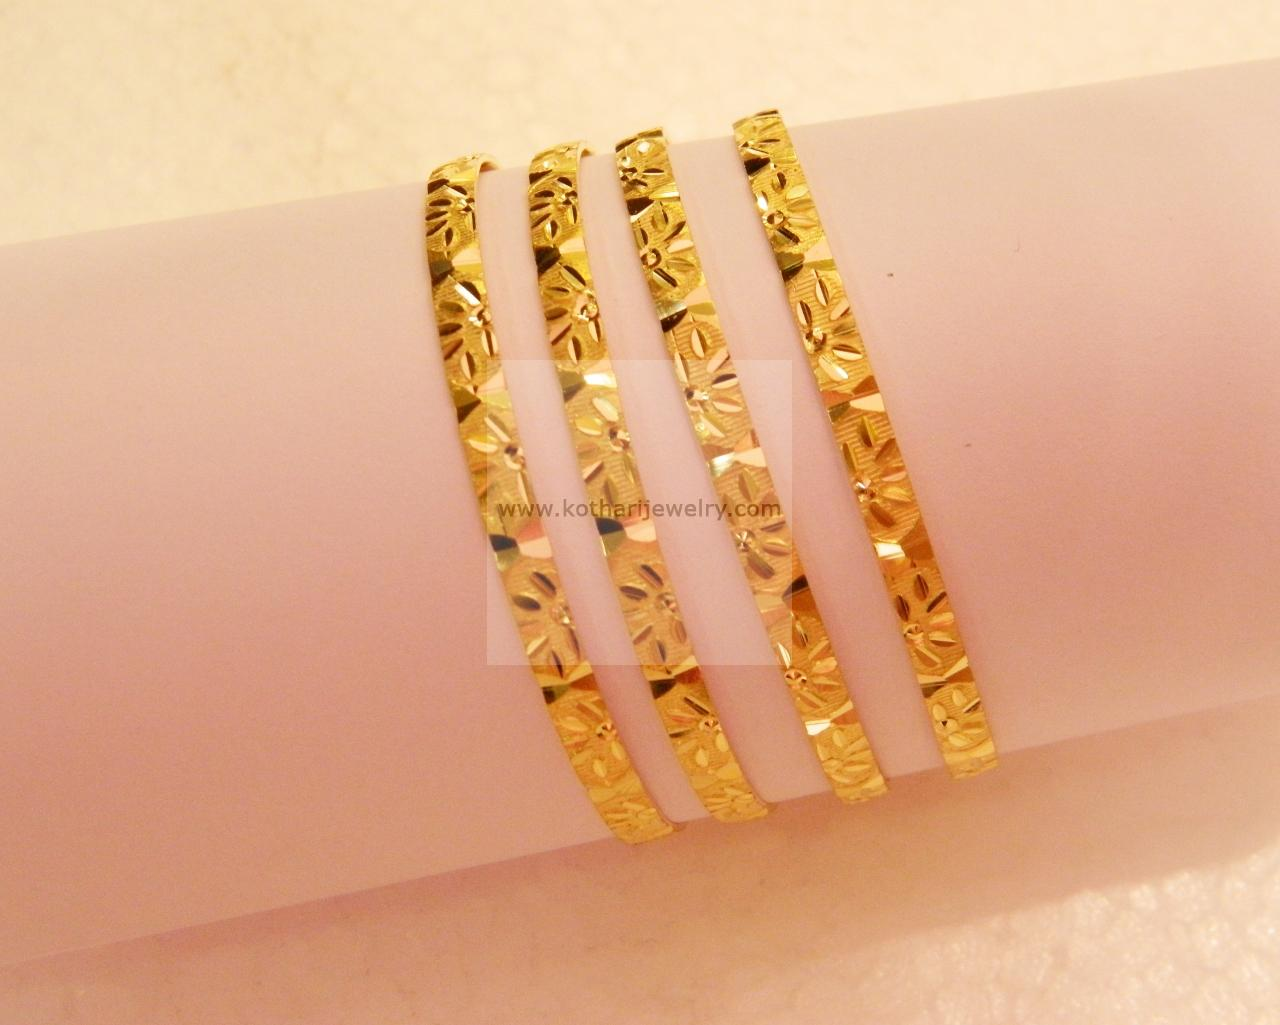 bangles amazon uk yellow gold jewellery co dp plain bracelet bangle carissima cut diamond